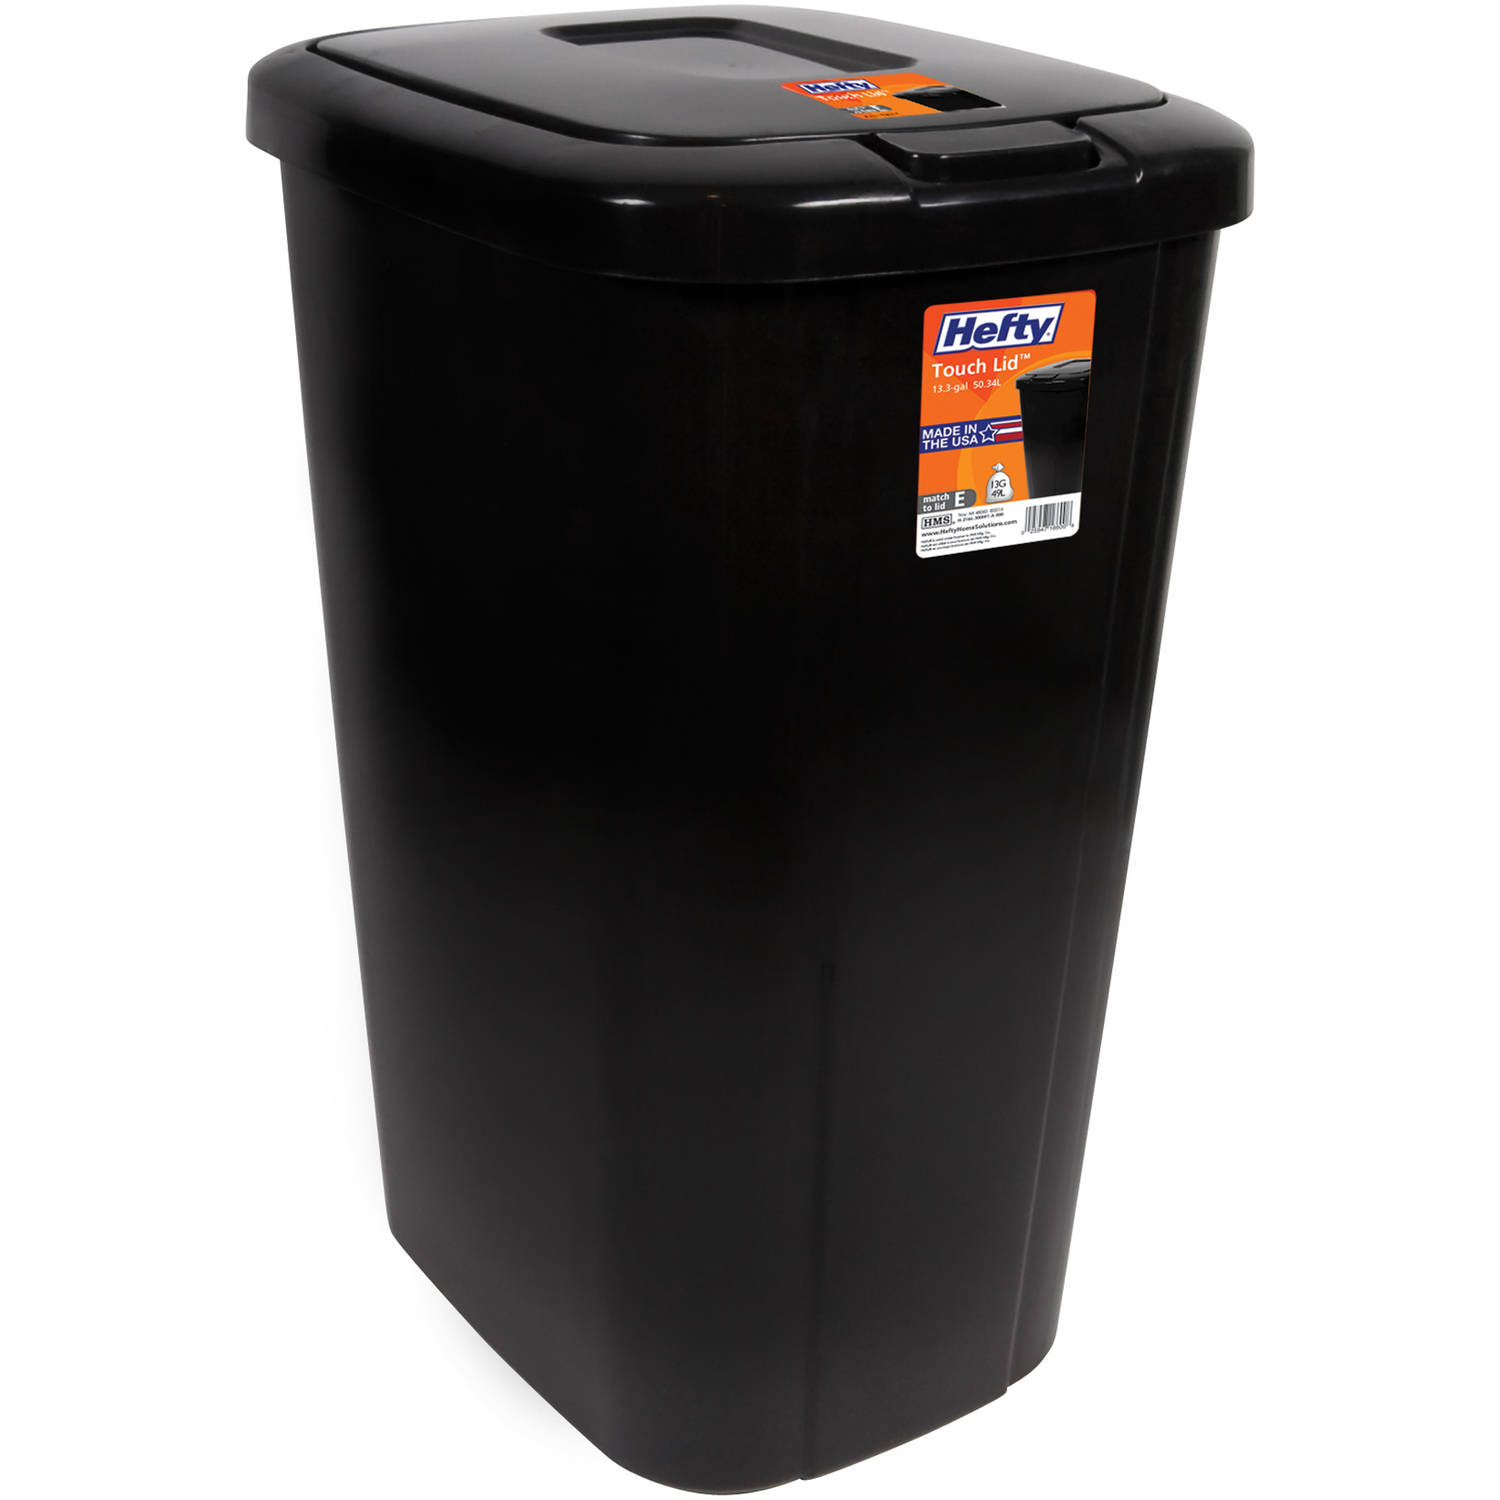 hefty touch-lid 13.3-gallon trash can, black - walmart